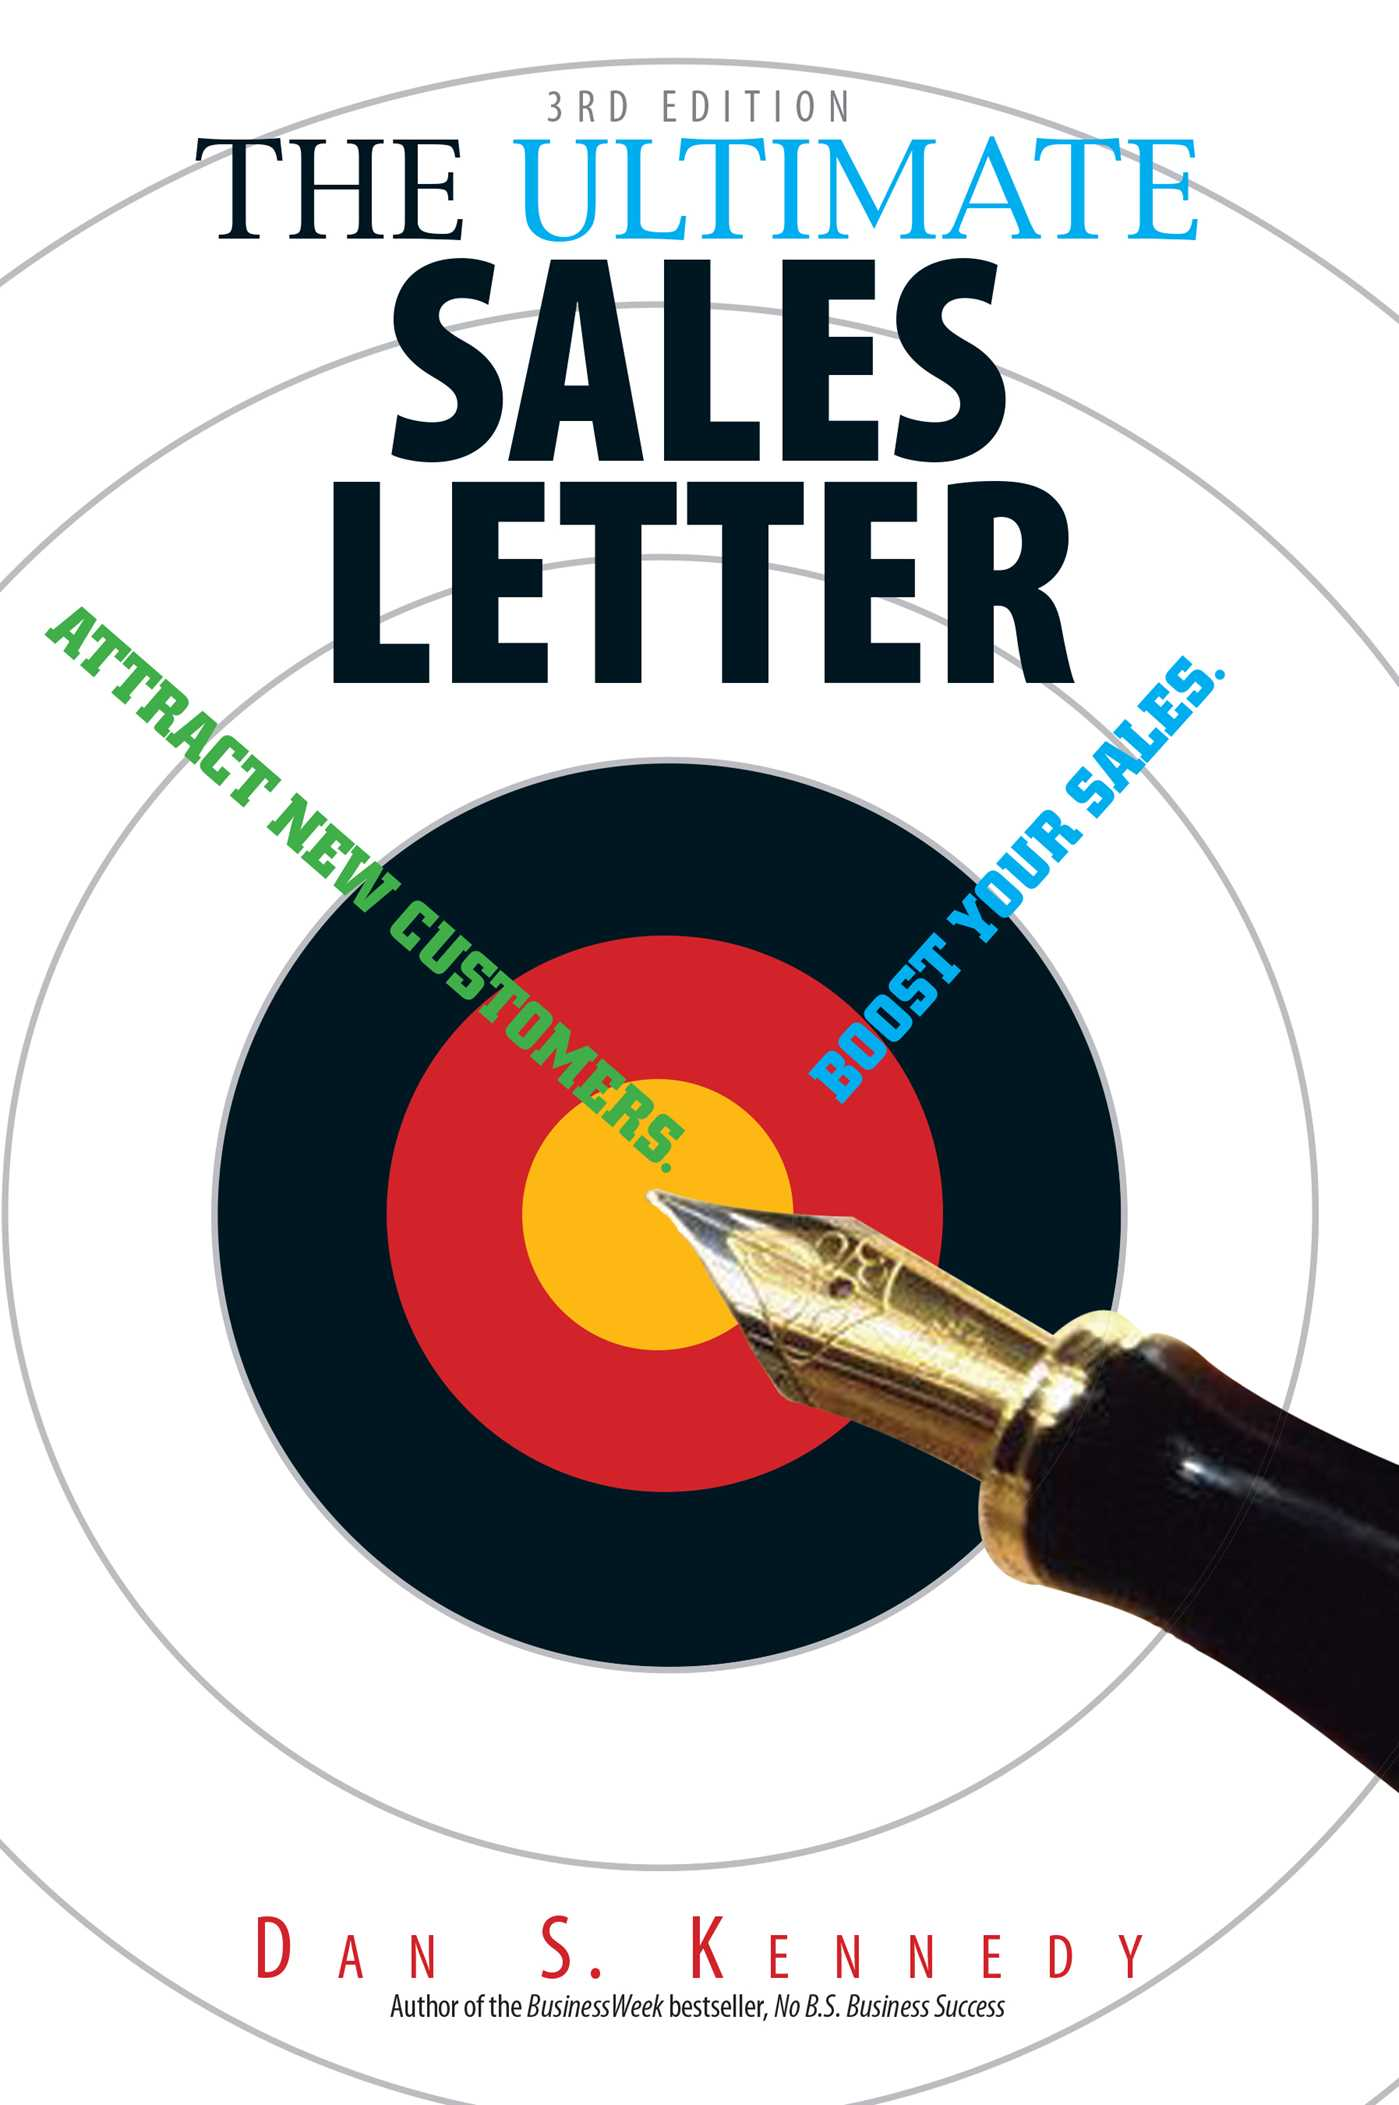 The ultimate sales letter 3rd editon e book 9781605508276 hr